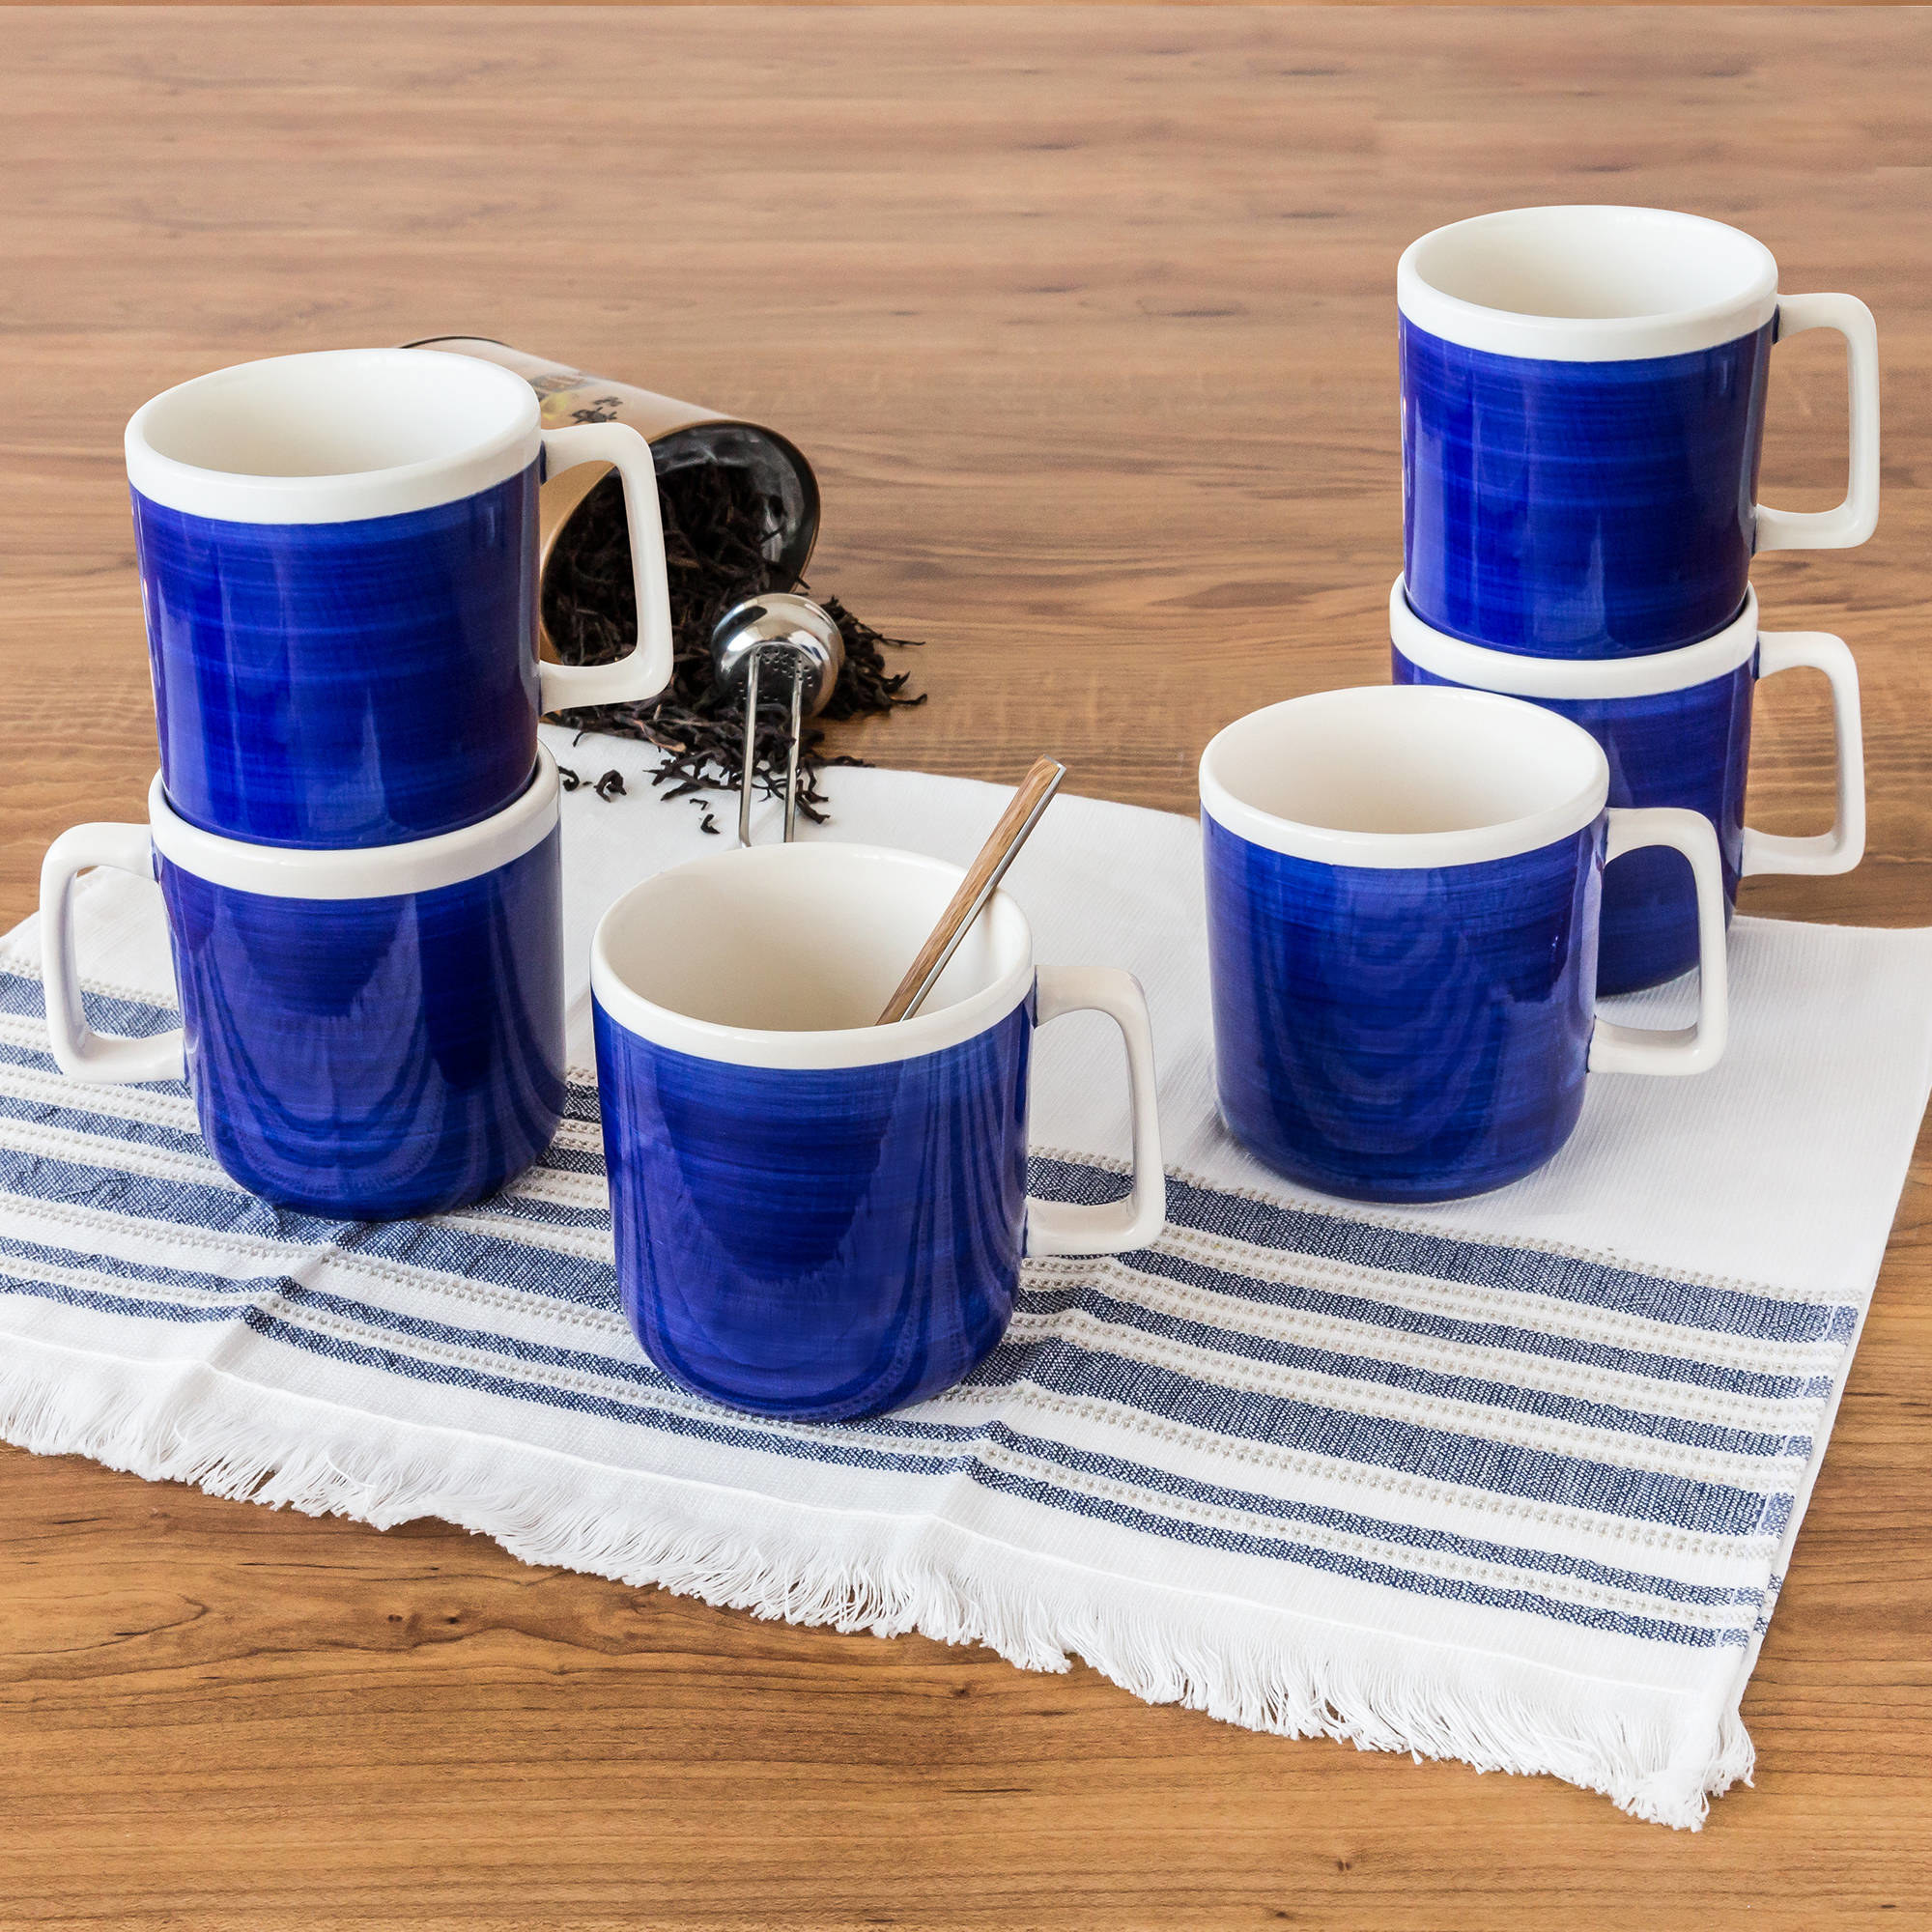 six indigo mugs with white rims and white handles